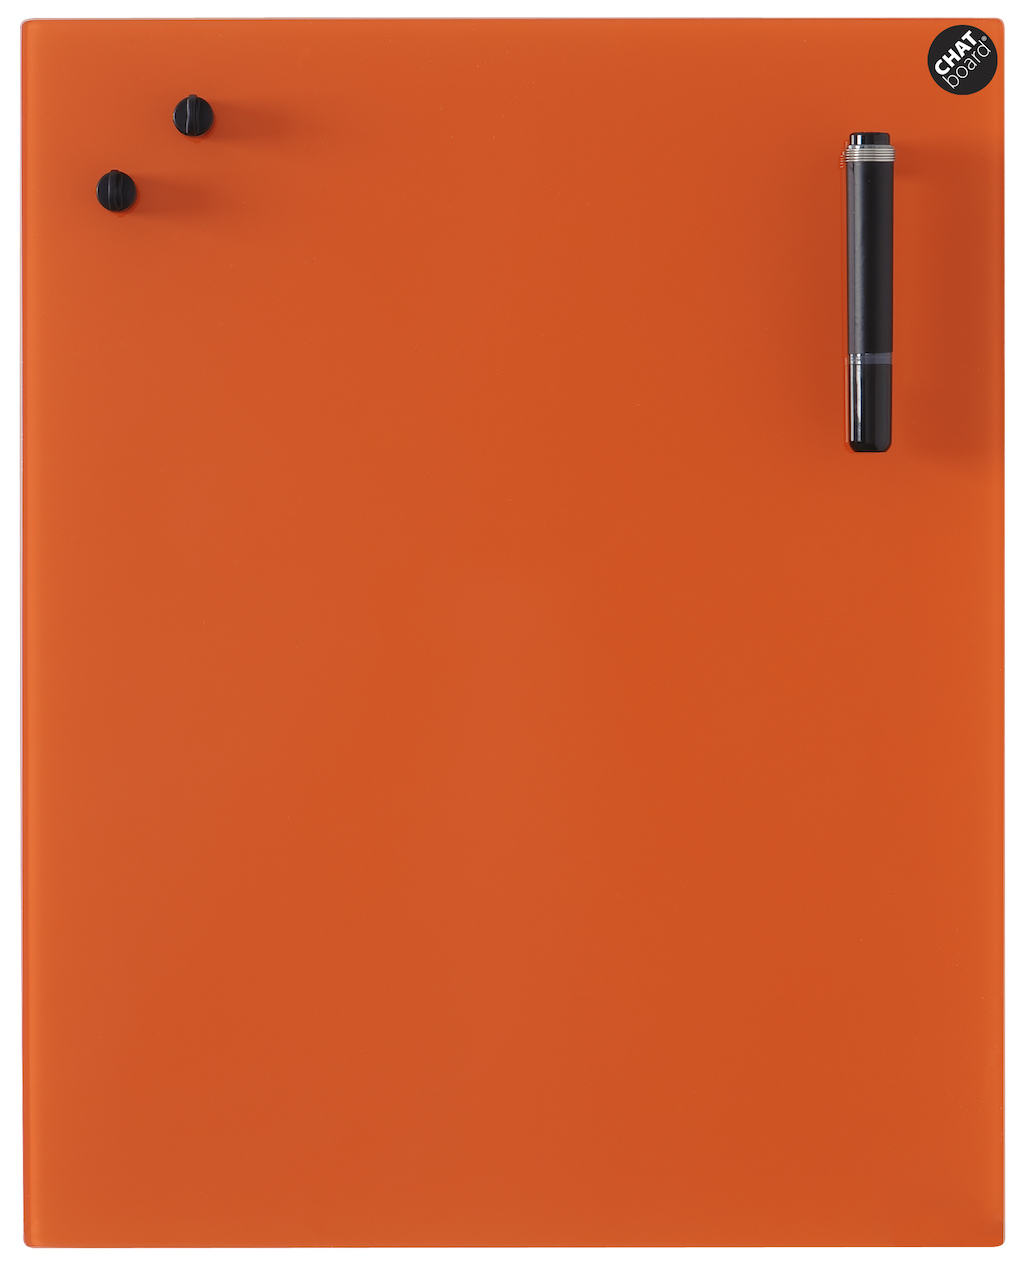 CHAT BOARD® – Orange